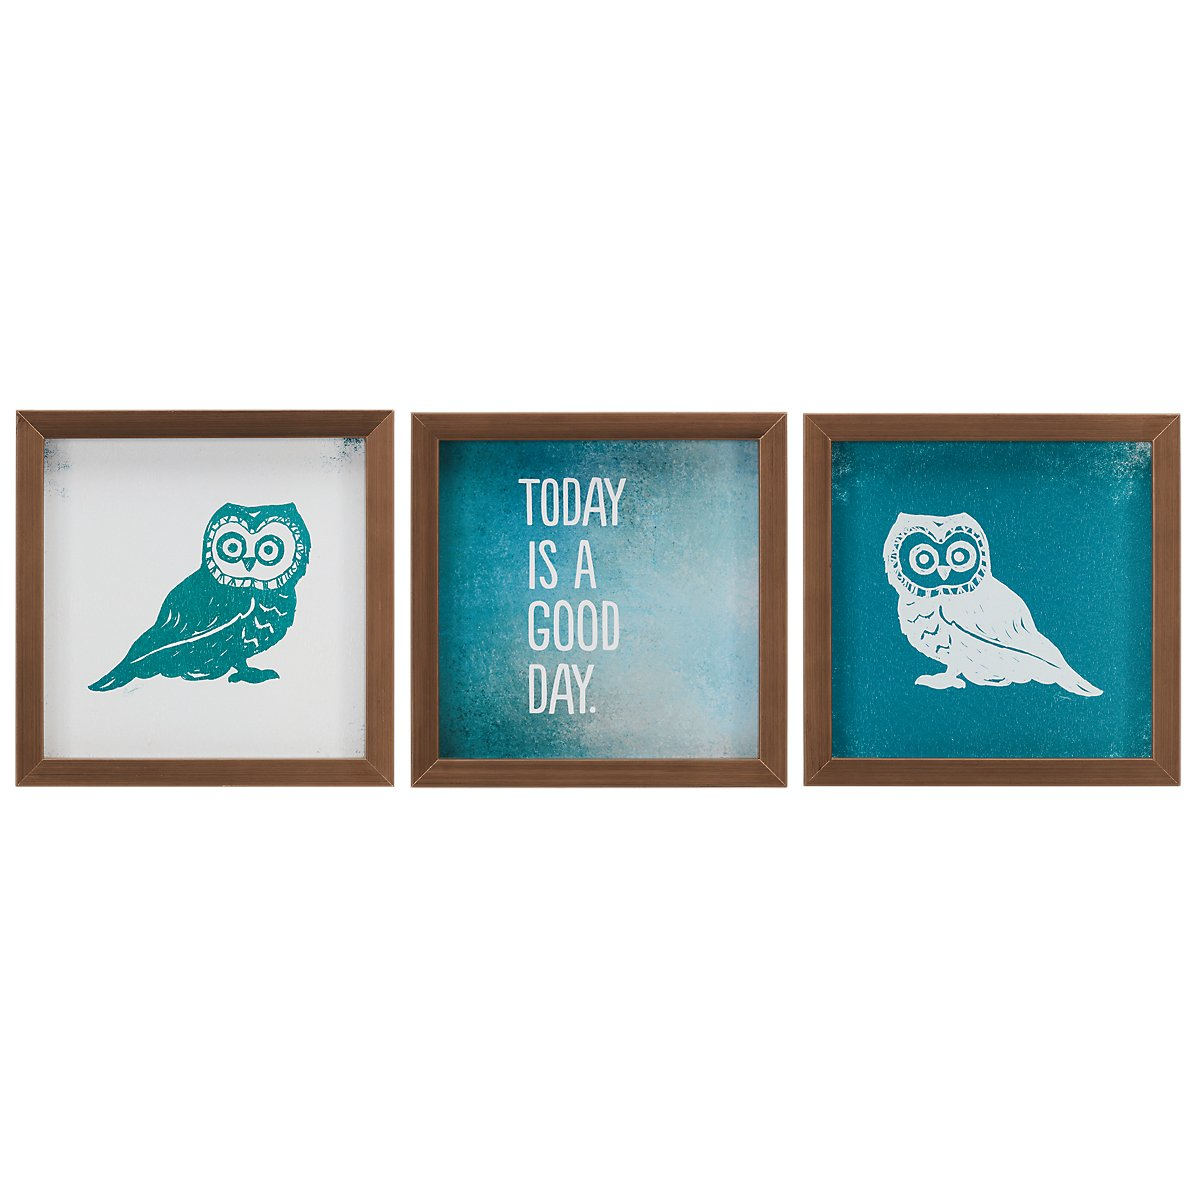 city furniture owl teal set of 3 framed wall art. Black Bedroom Furniture Sets. Home Design Ideas